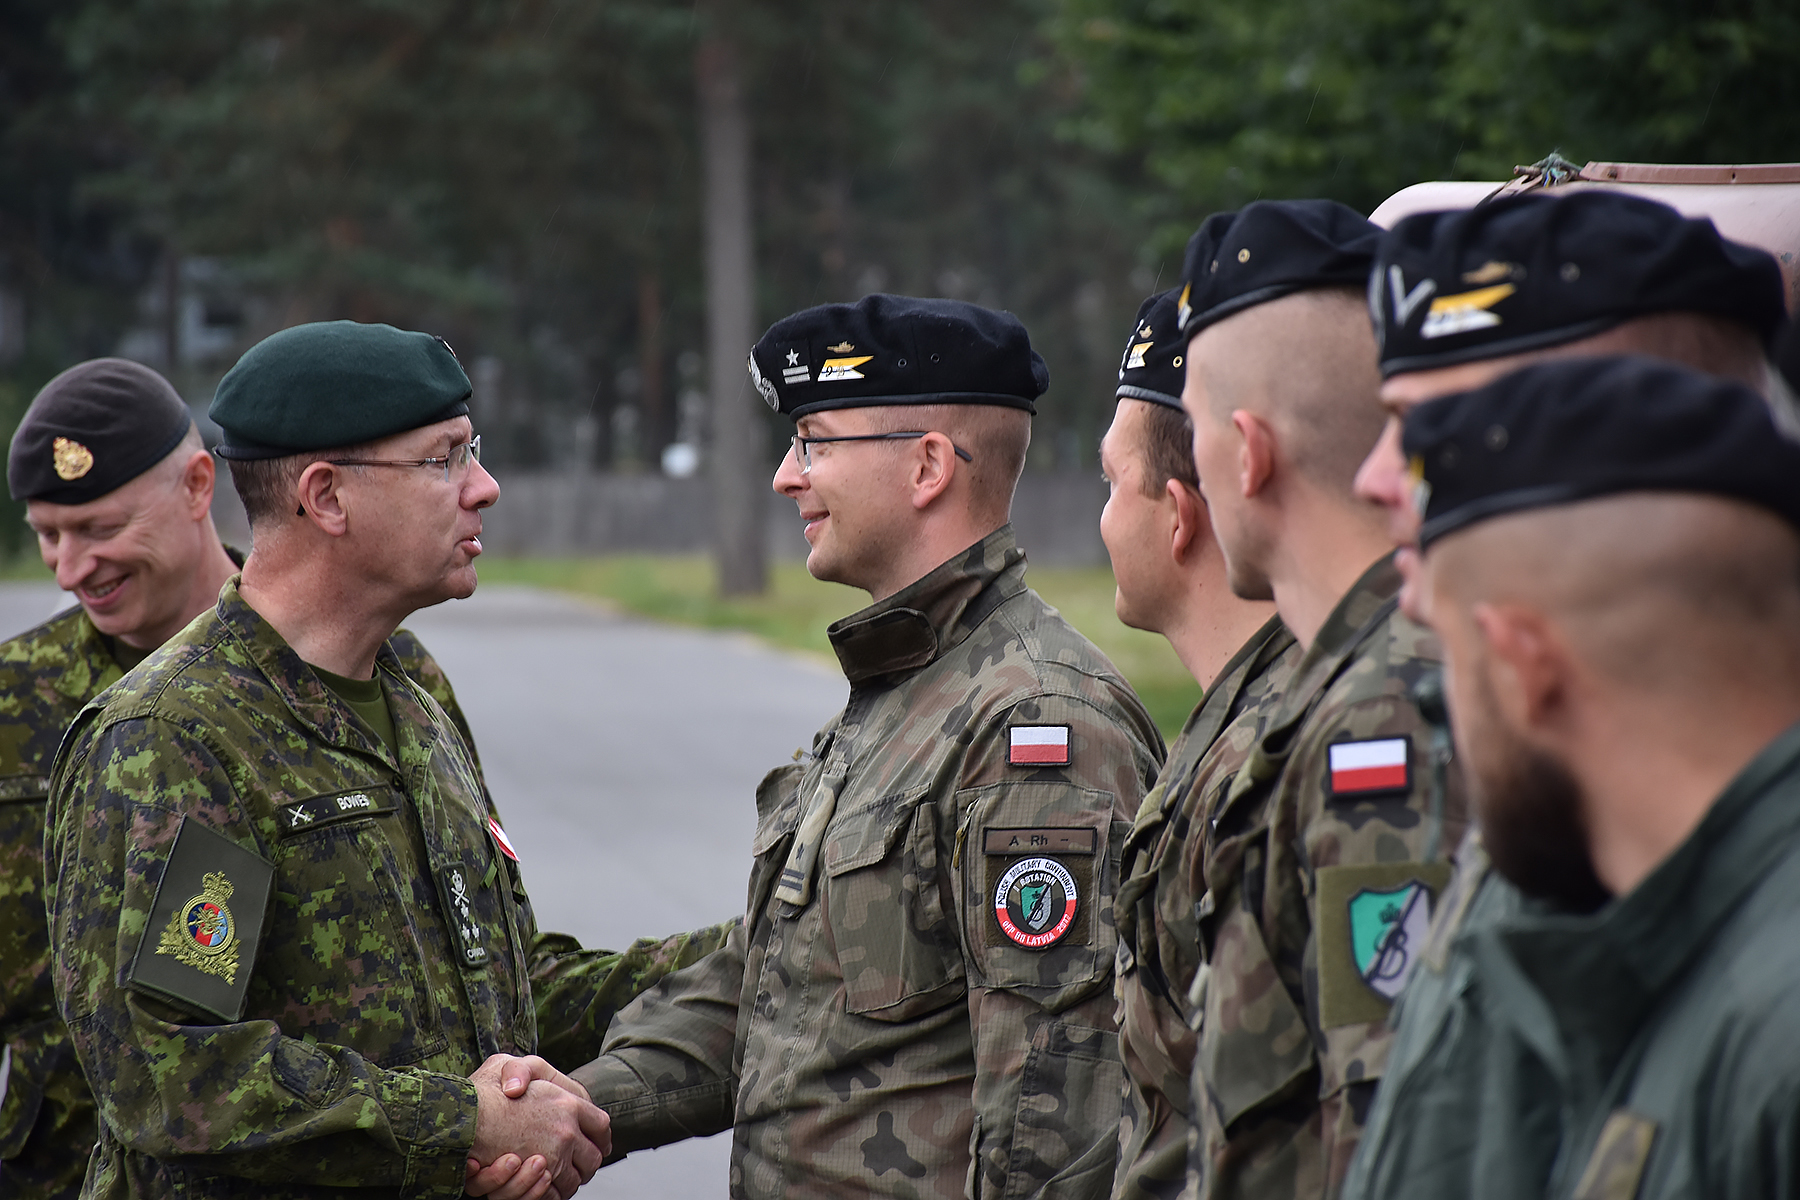 During his visit to the eFP BG in Latvia last August, LGen Stephen Bowes spoke with our members of the allied NATO mission, including soldiers of the Polish armed forces